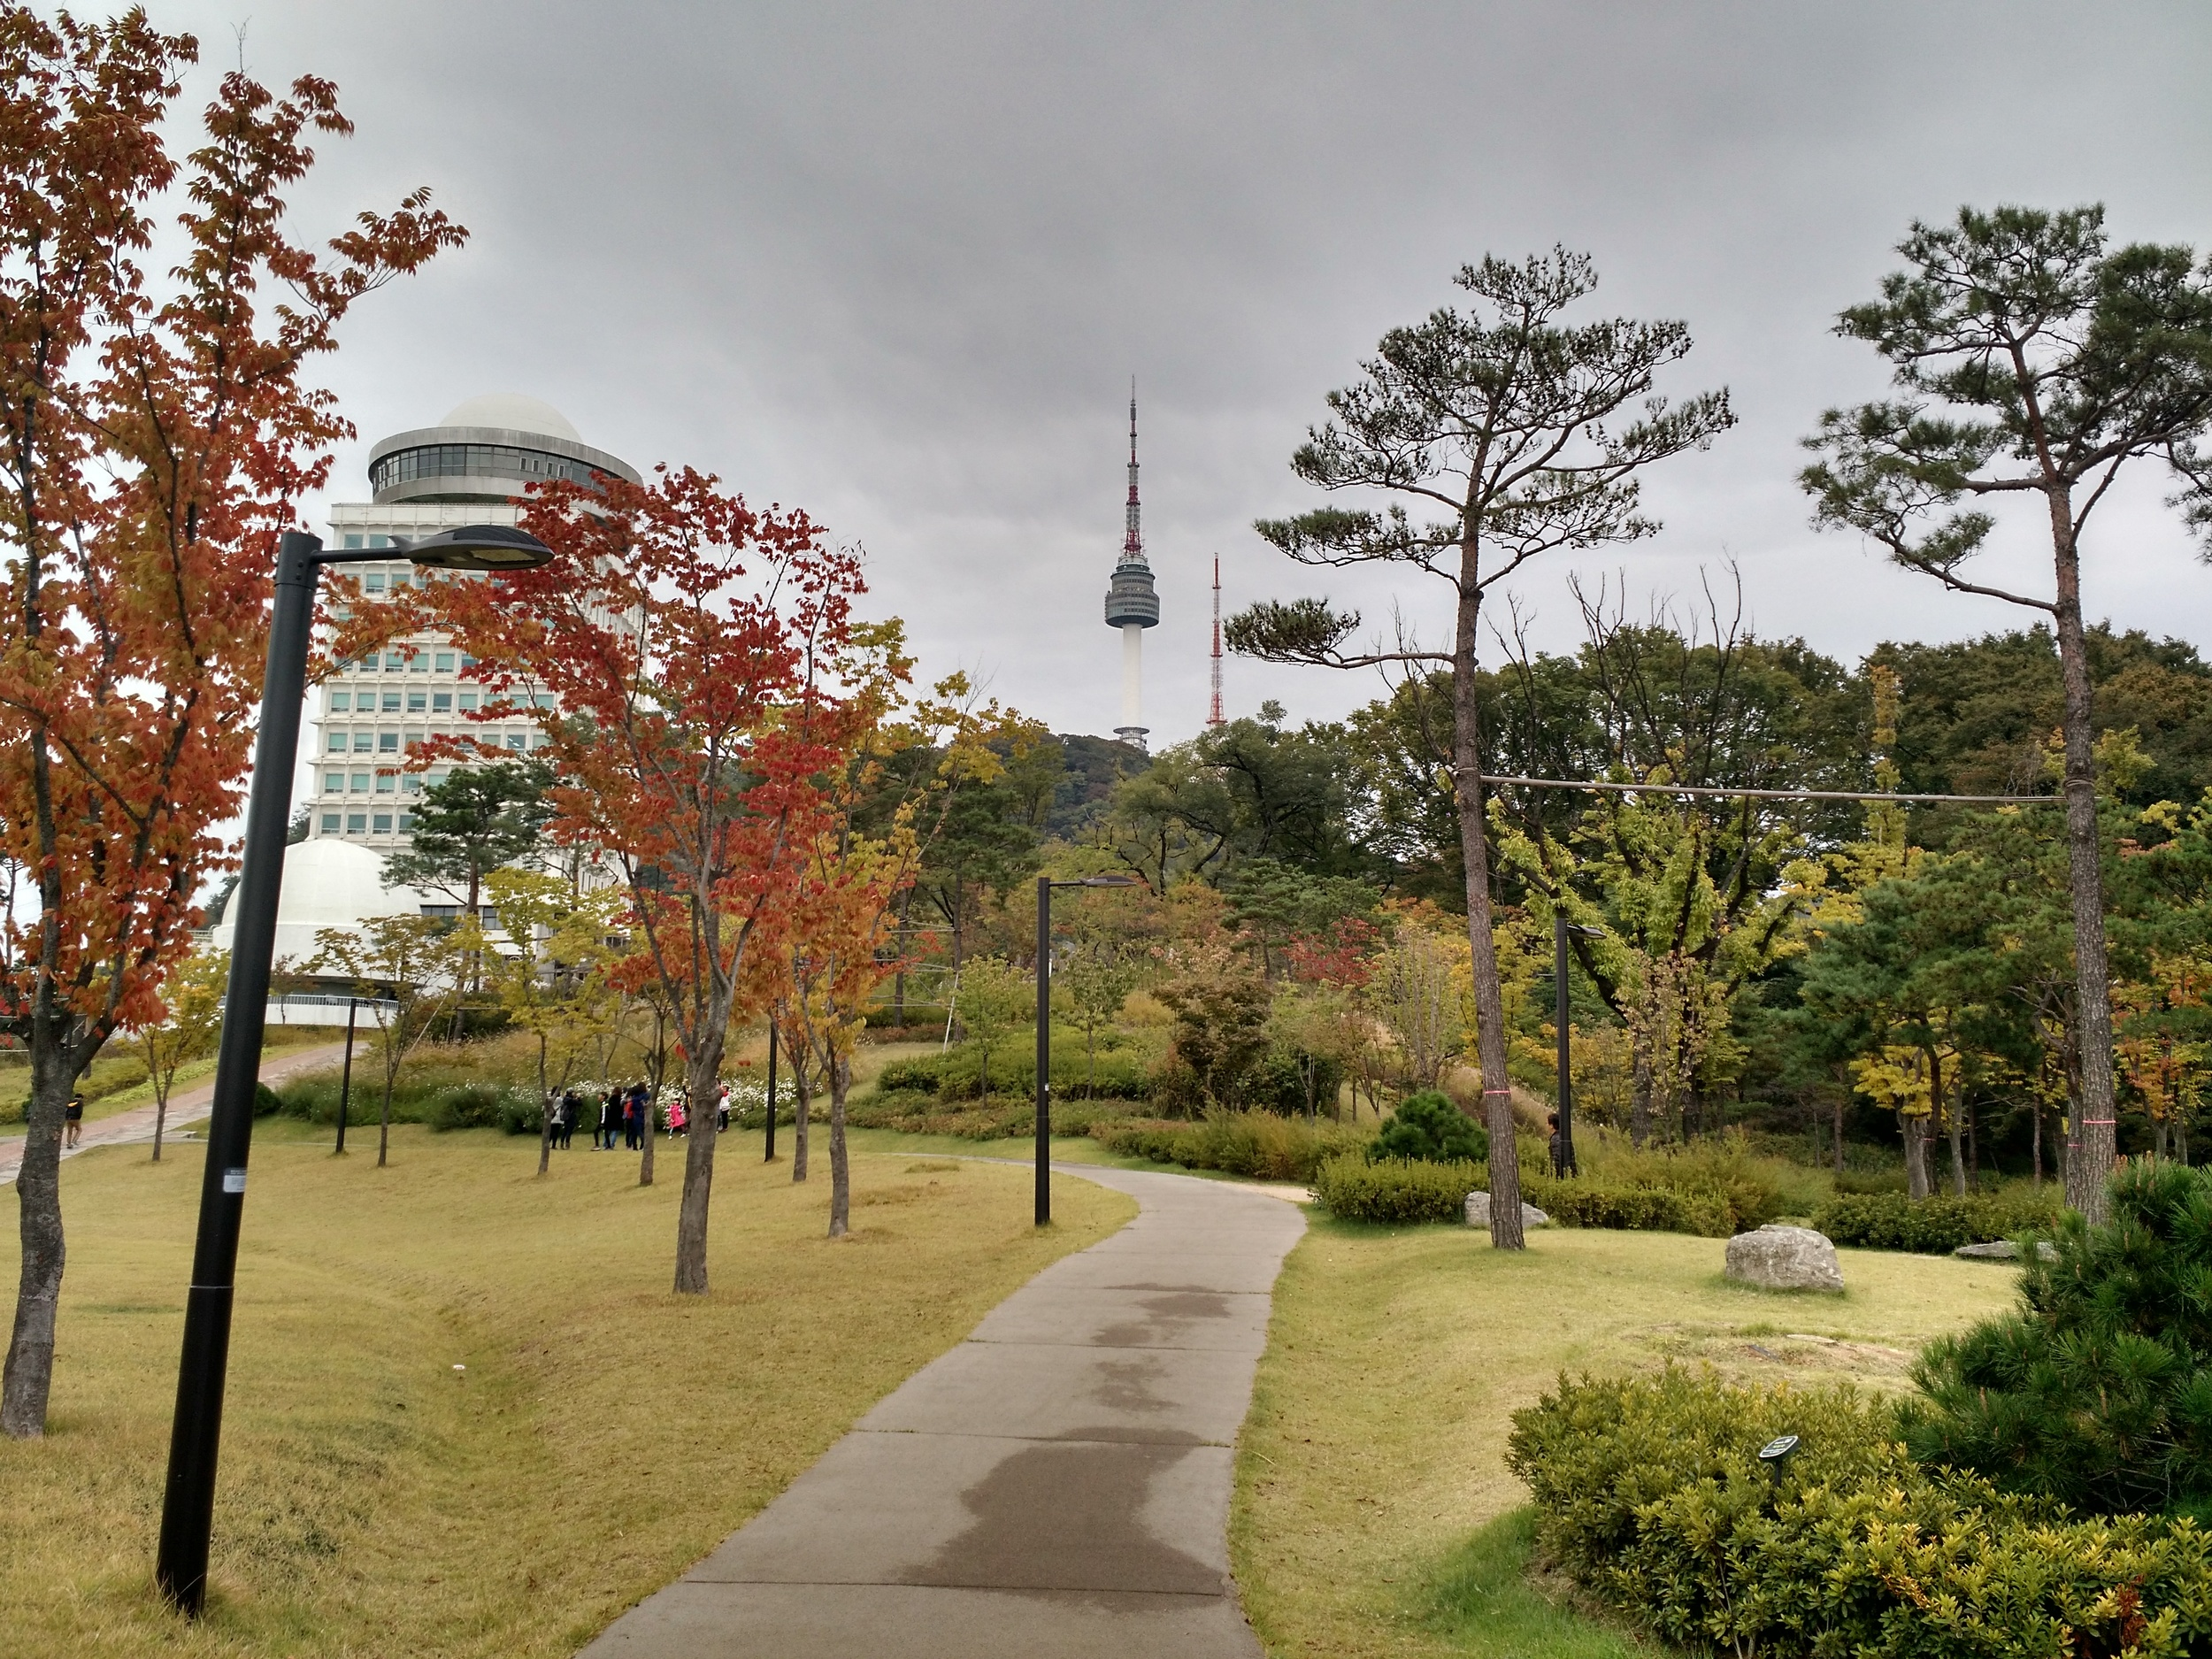 Day 3 started with a trip to North Seoul Tower